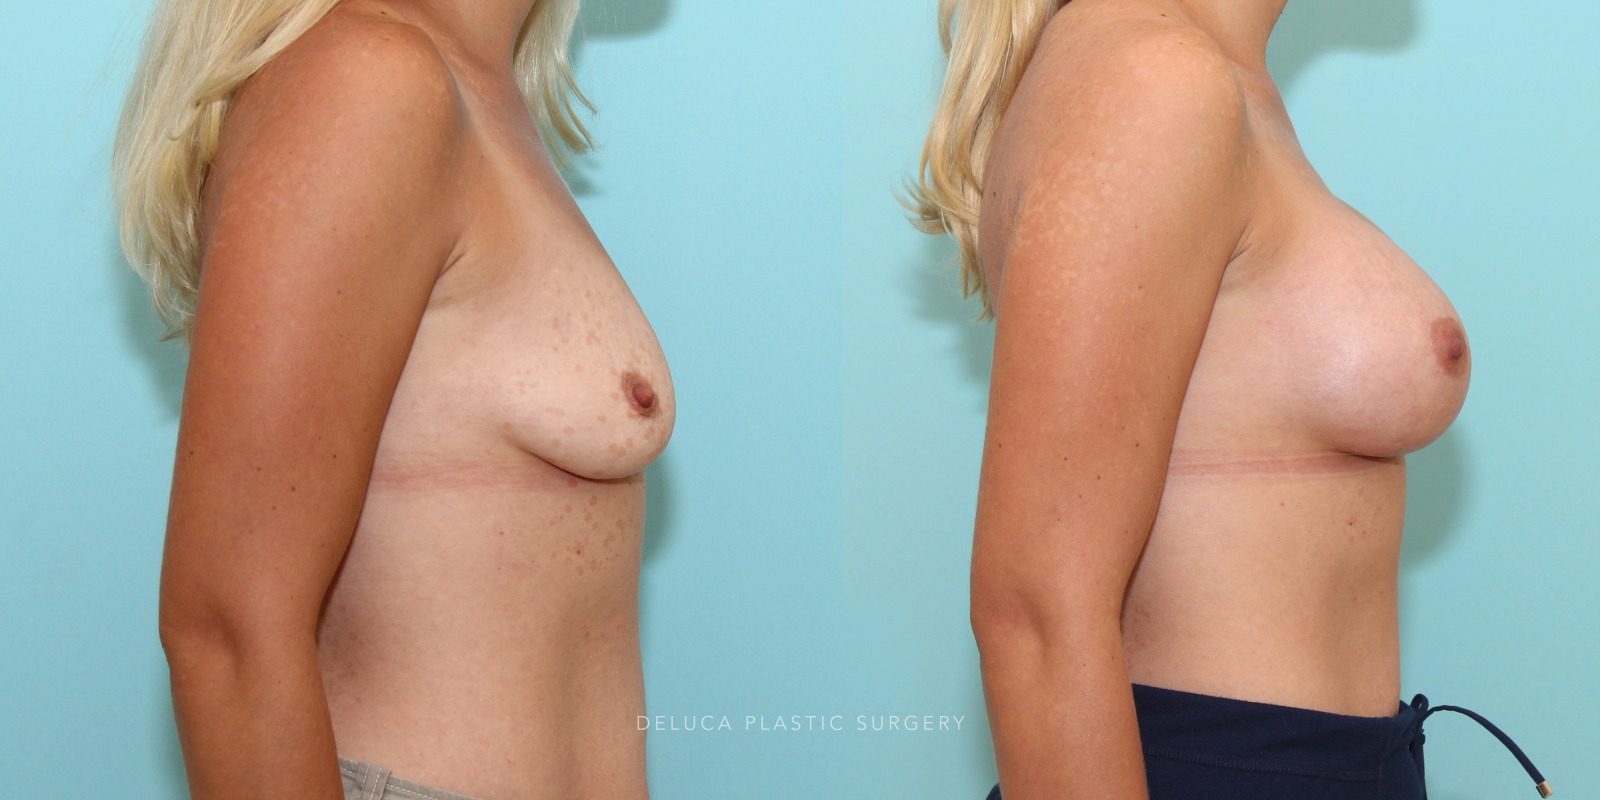 33 year old Dual Plane Asymmetric Breast Augmentation with 350ml and 400ml High Profile Silicone Implants